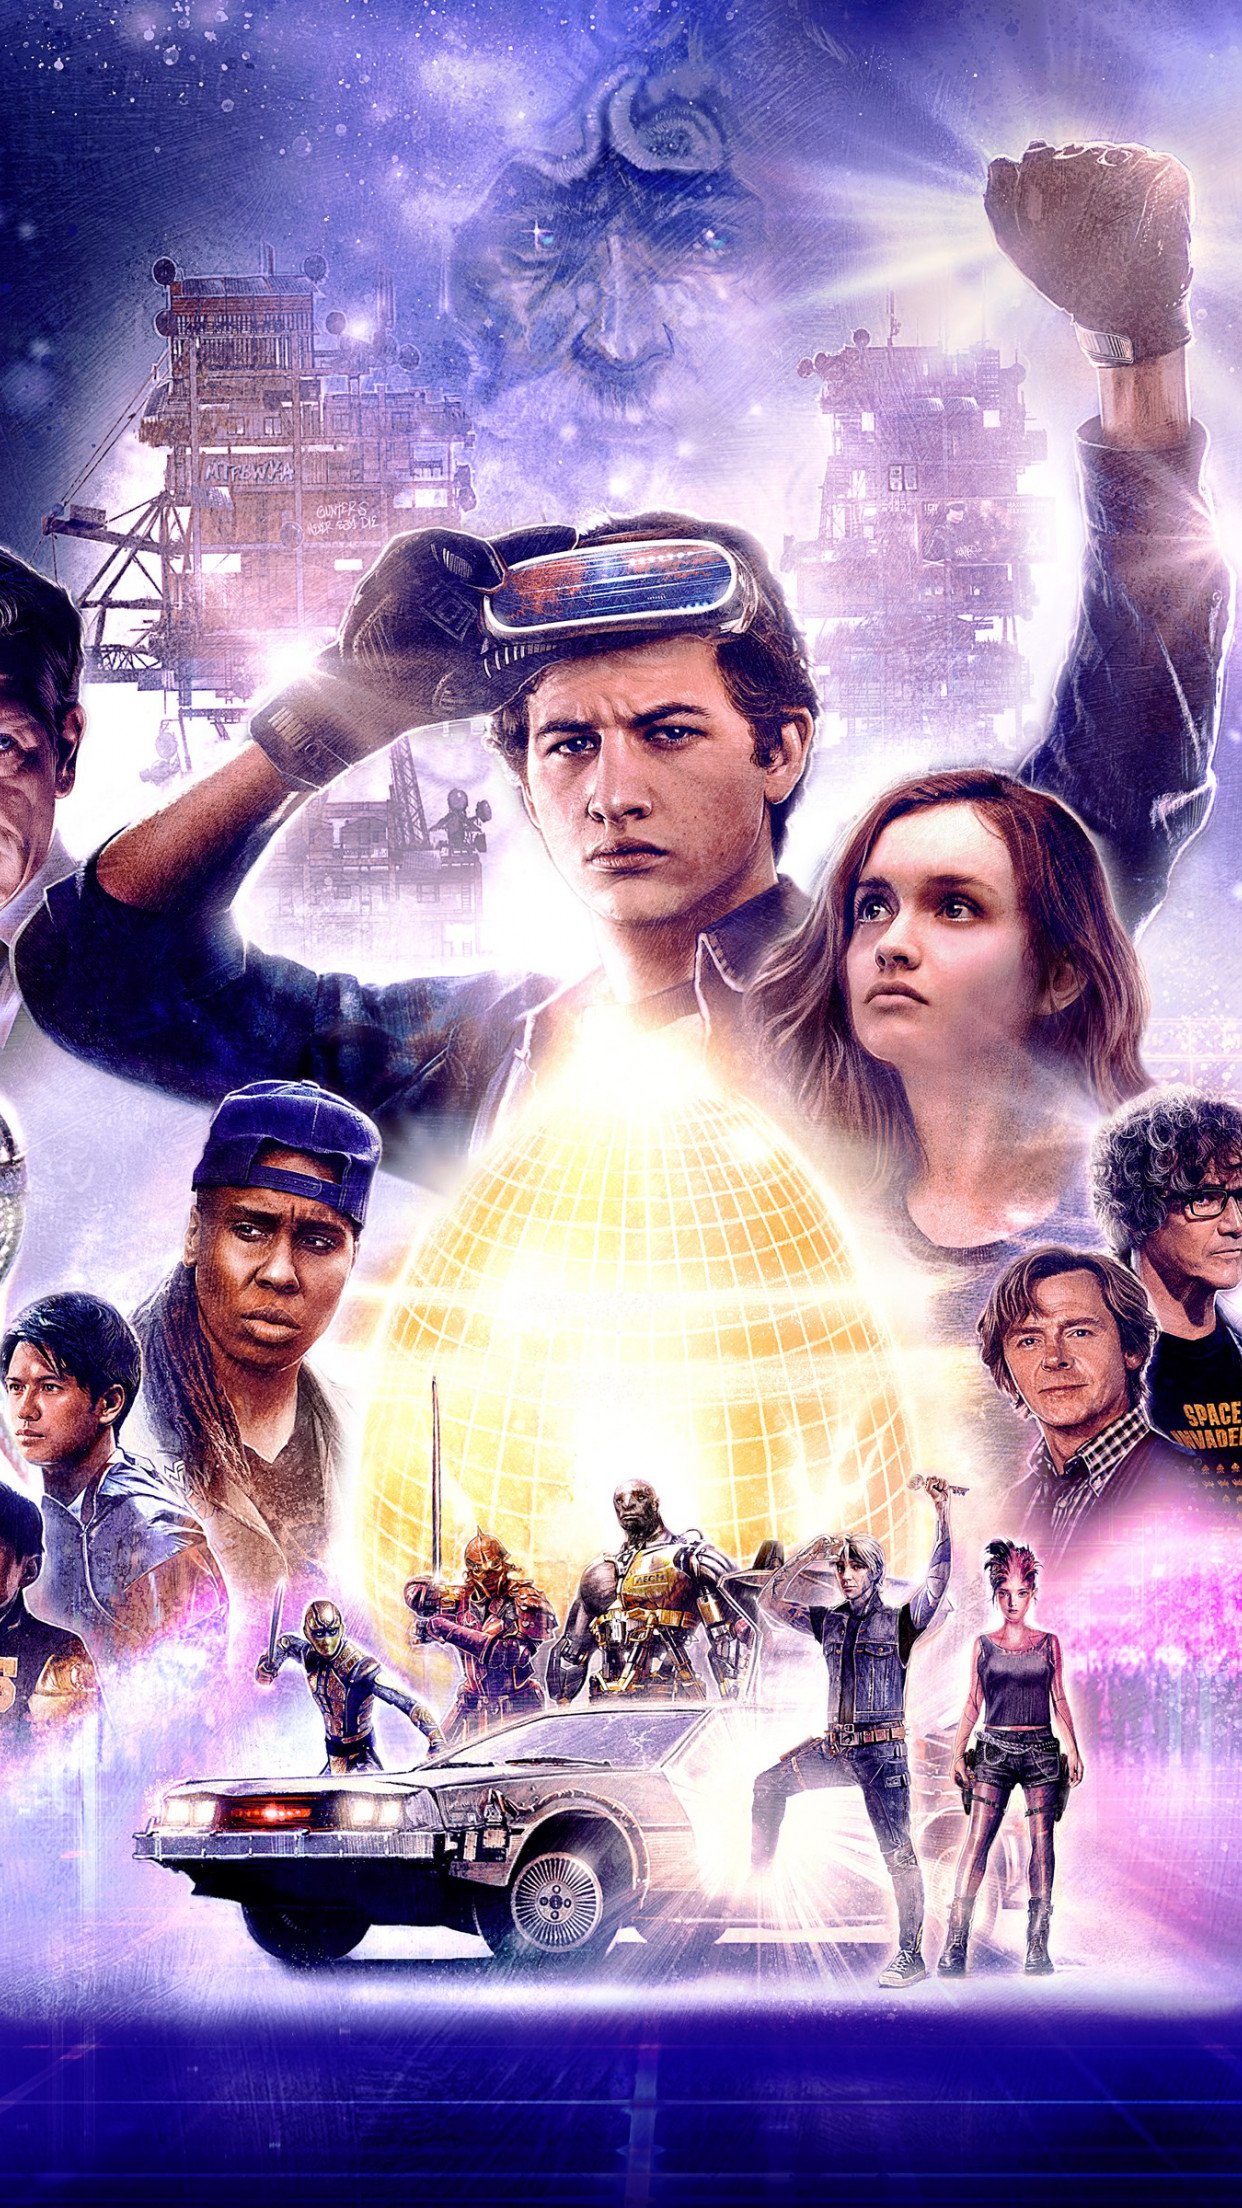 Download Wallpaper Ready Player One Poster 1242x2208